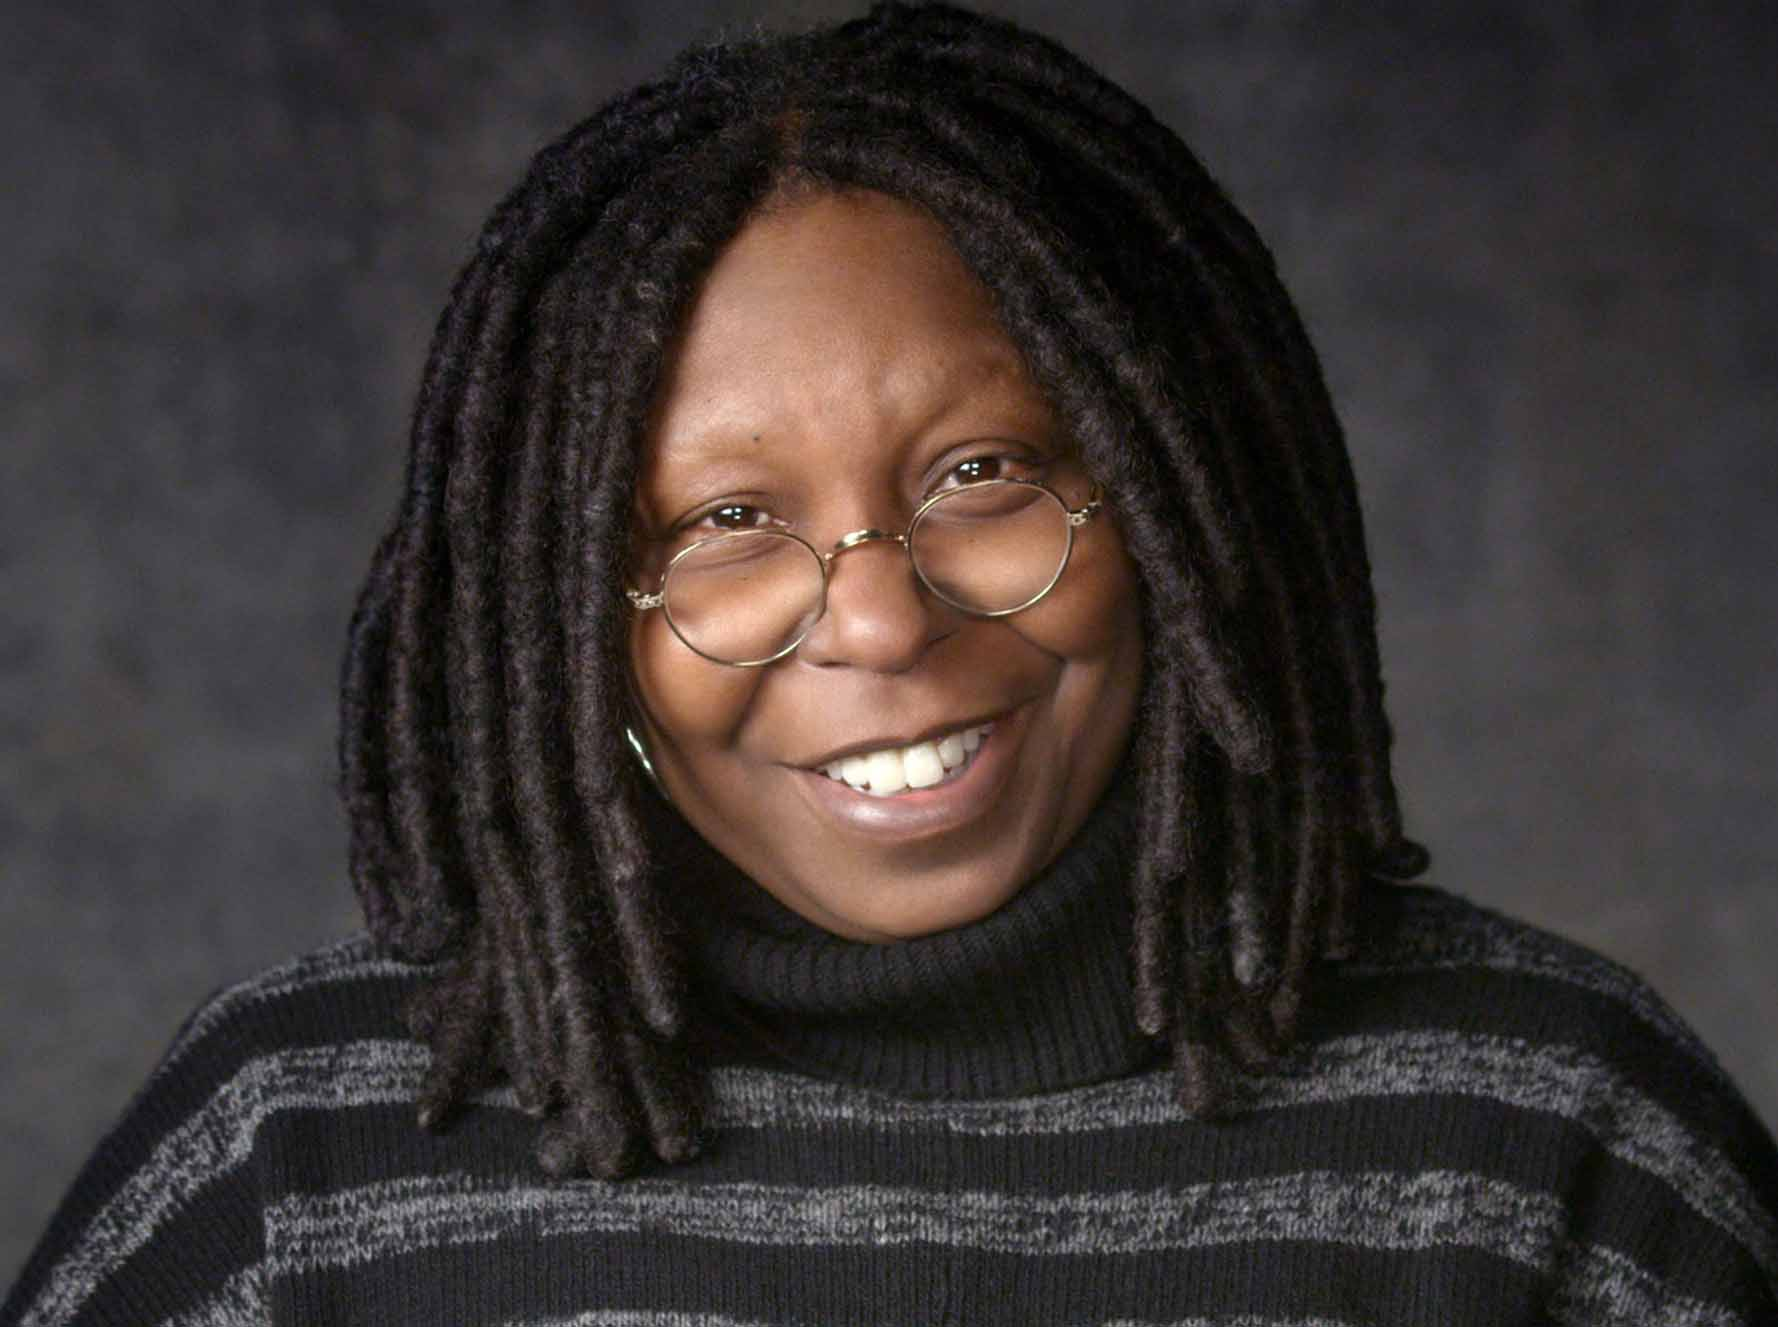 Whoopi Goldberg born 13 November 1955 age 62 is the actress and comedian who portrayed Guinan on occasion from Season 2 through Season 6 of Star Trek The Next